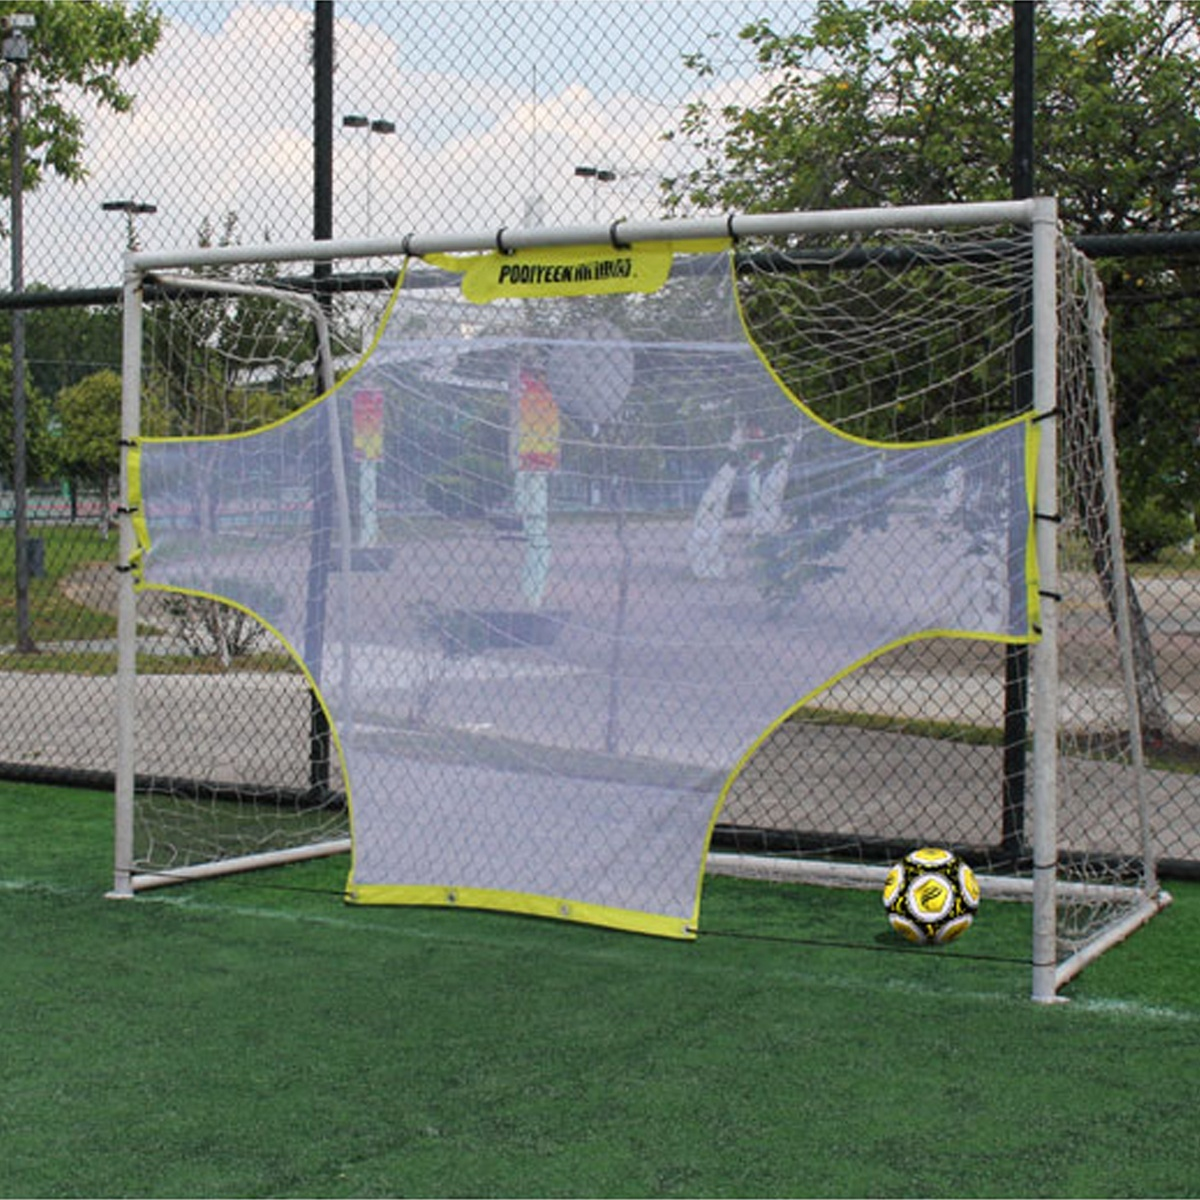 5-11 Person Football Soccer Training Target Portable Practice Training Shot Goal Net Soccer Ball For Children Students Adult